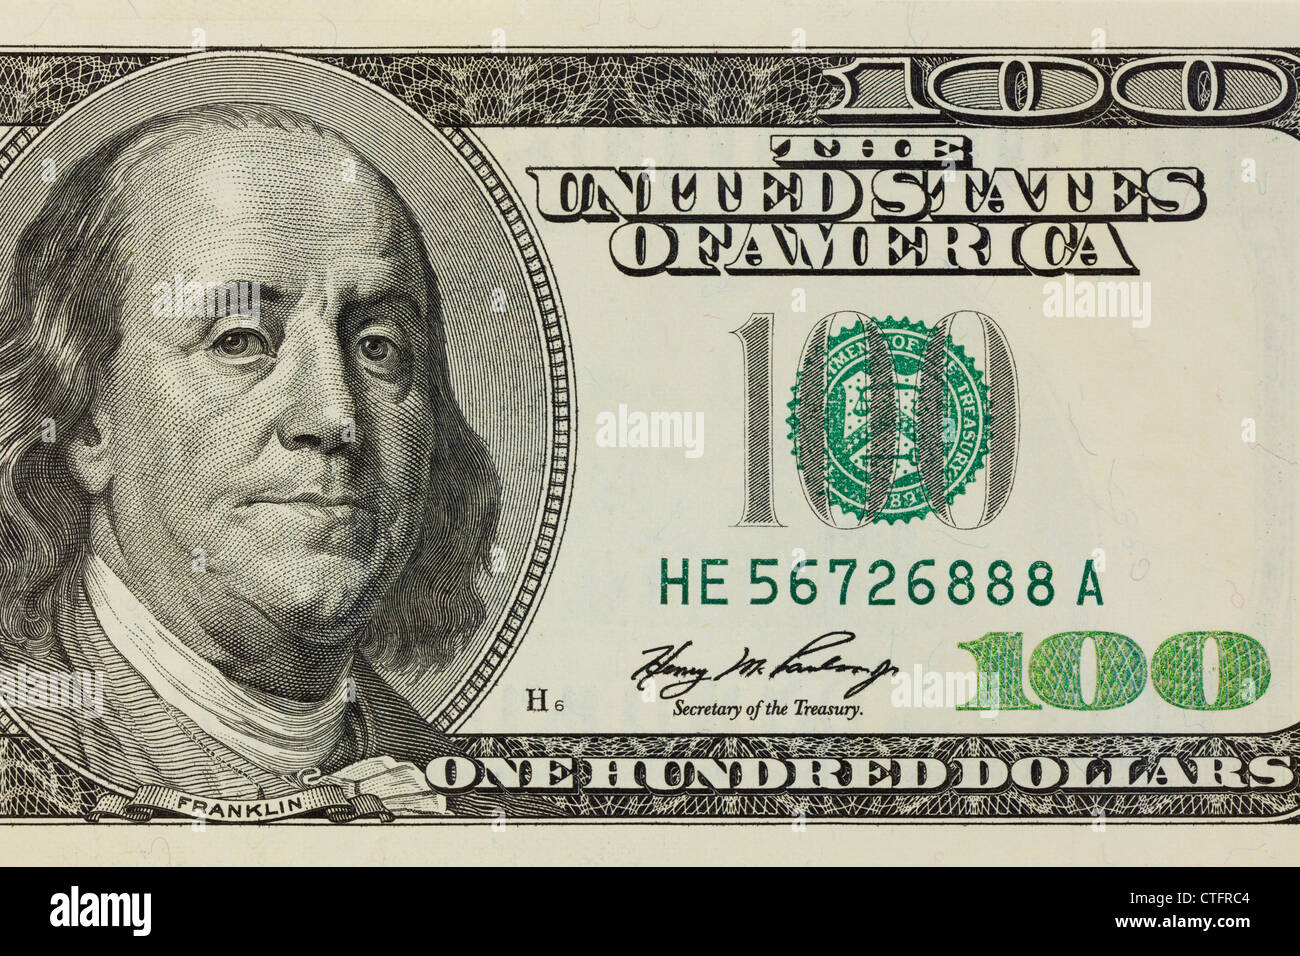 $100 bill closeup detail - Stock Image